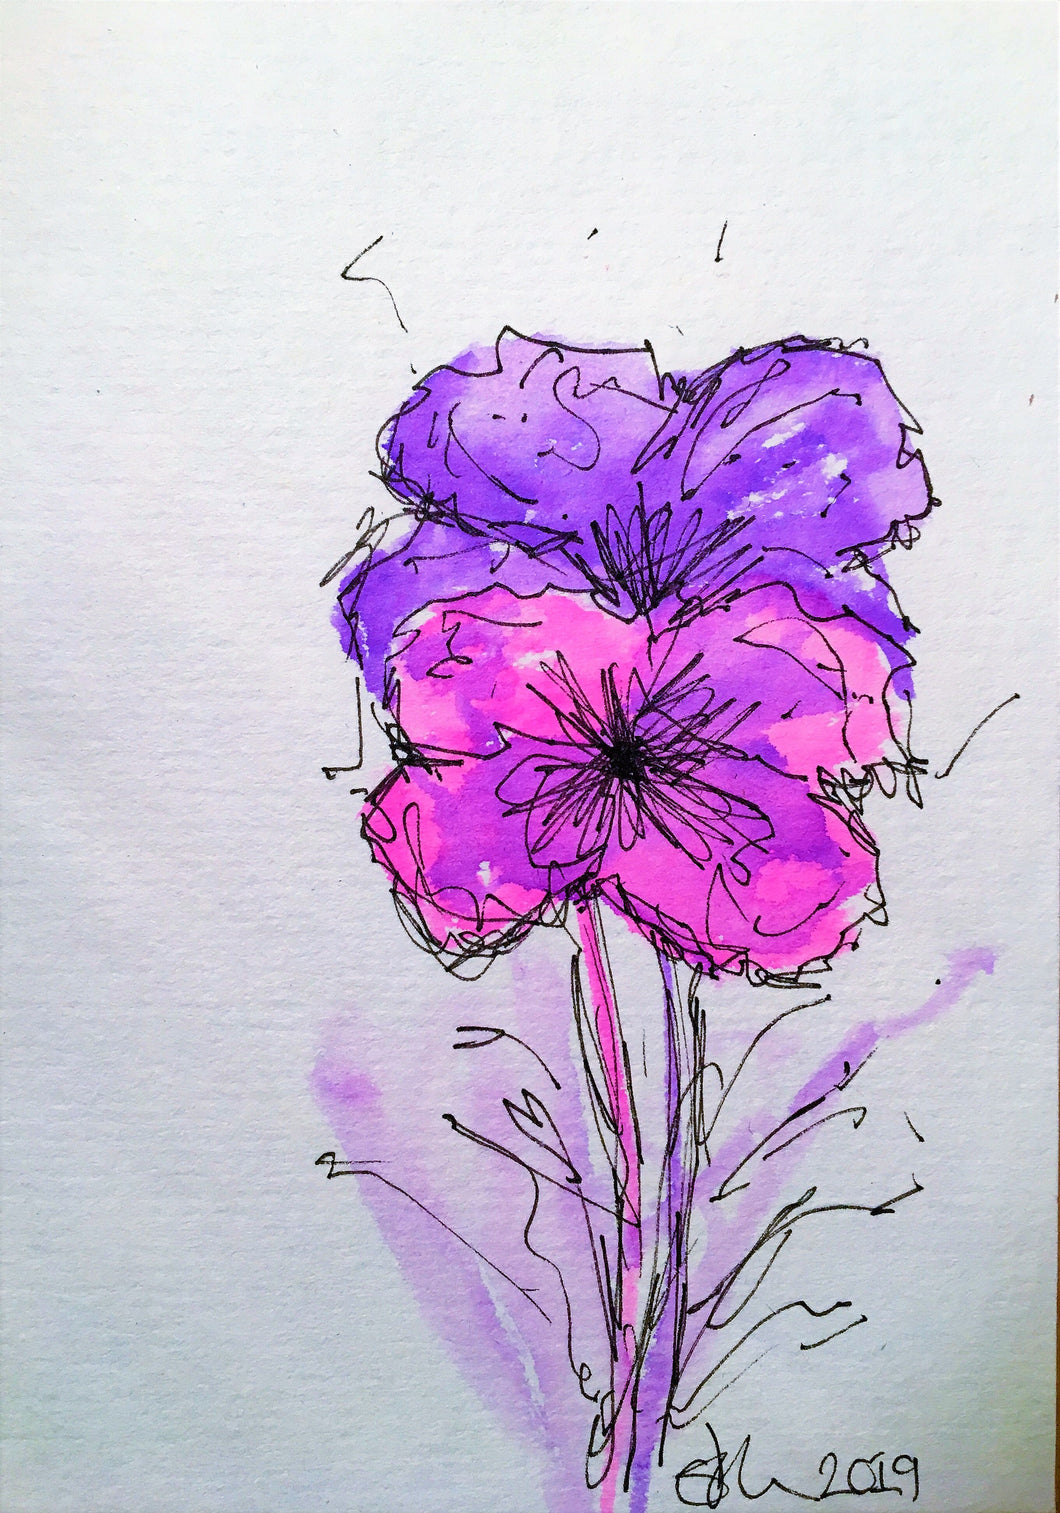 Handpainted Watercolour Greeting Card - Abstract Pink /Purple Flowers Design - eDgE dEsiGn London